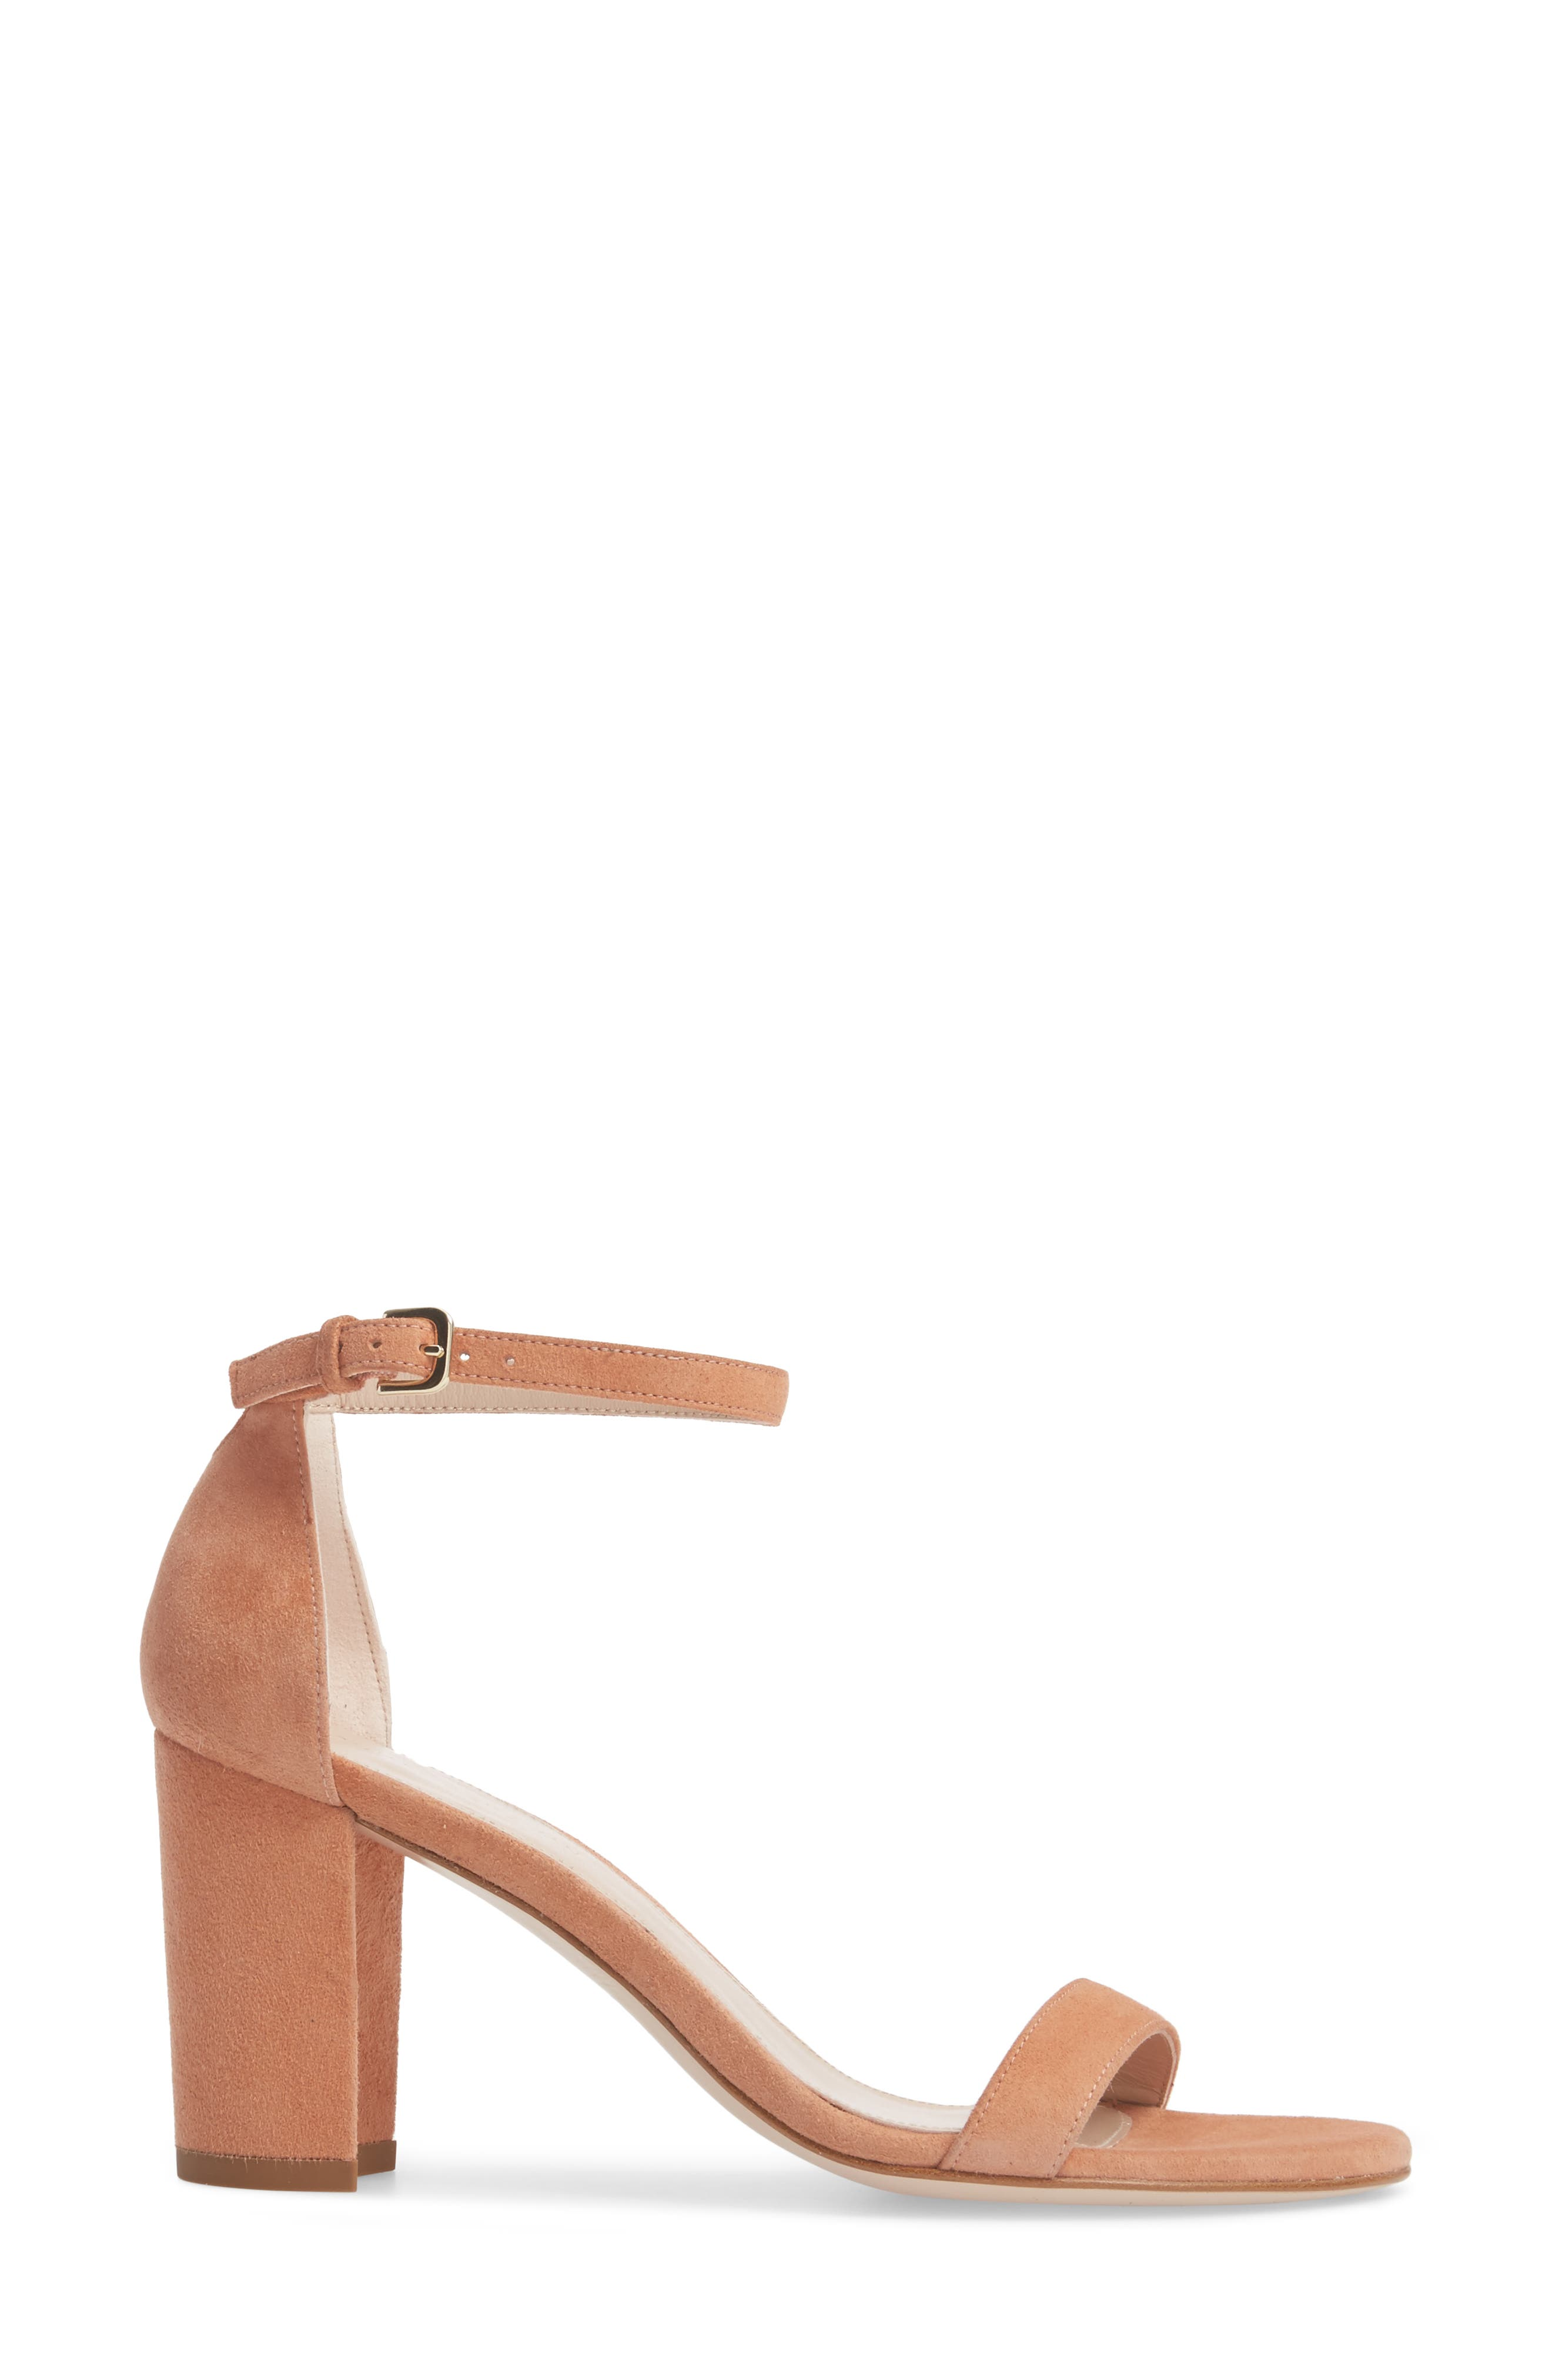 NearlyNude Ankle Strap Sandal,                             Alternate thumbnail 58, color,